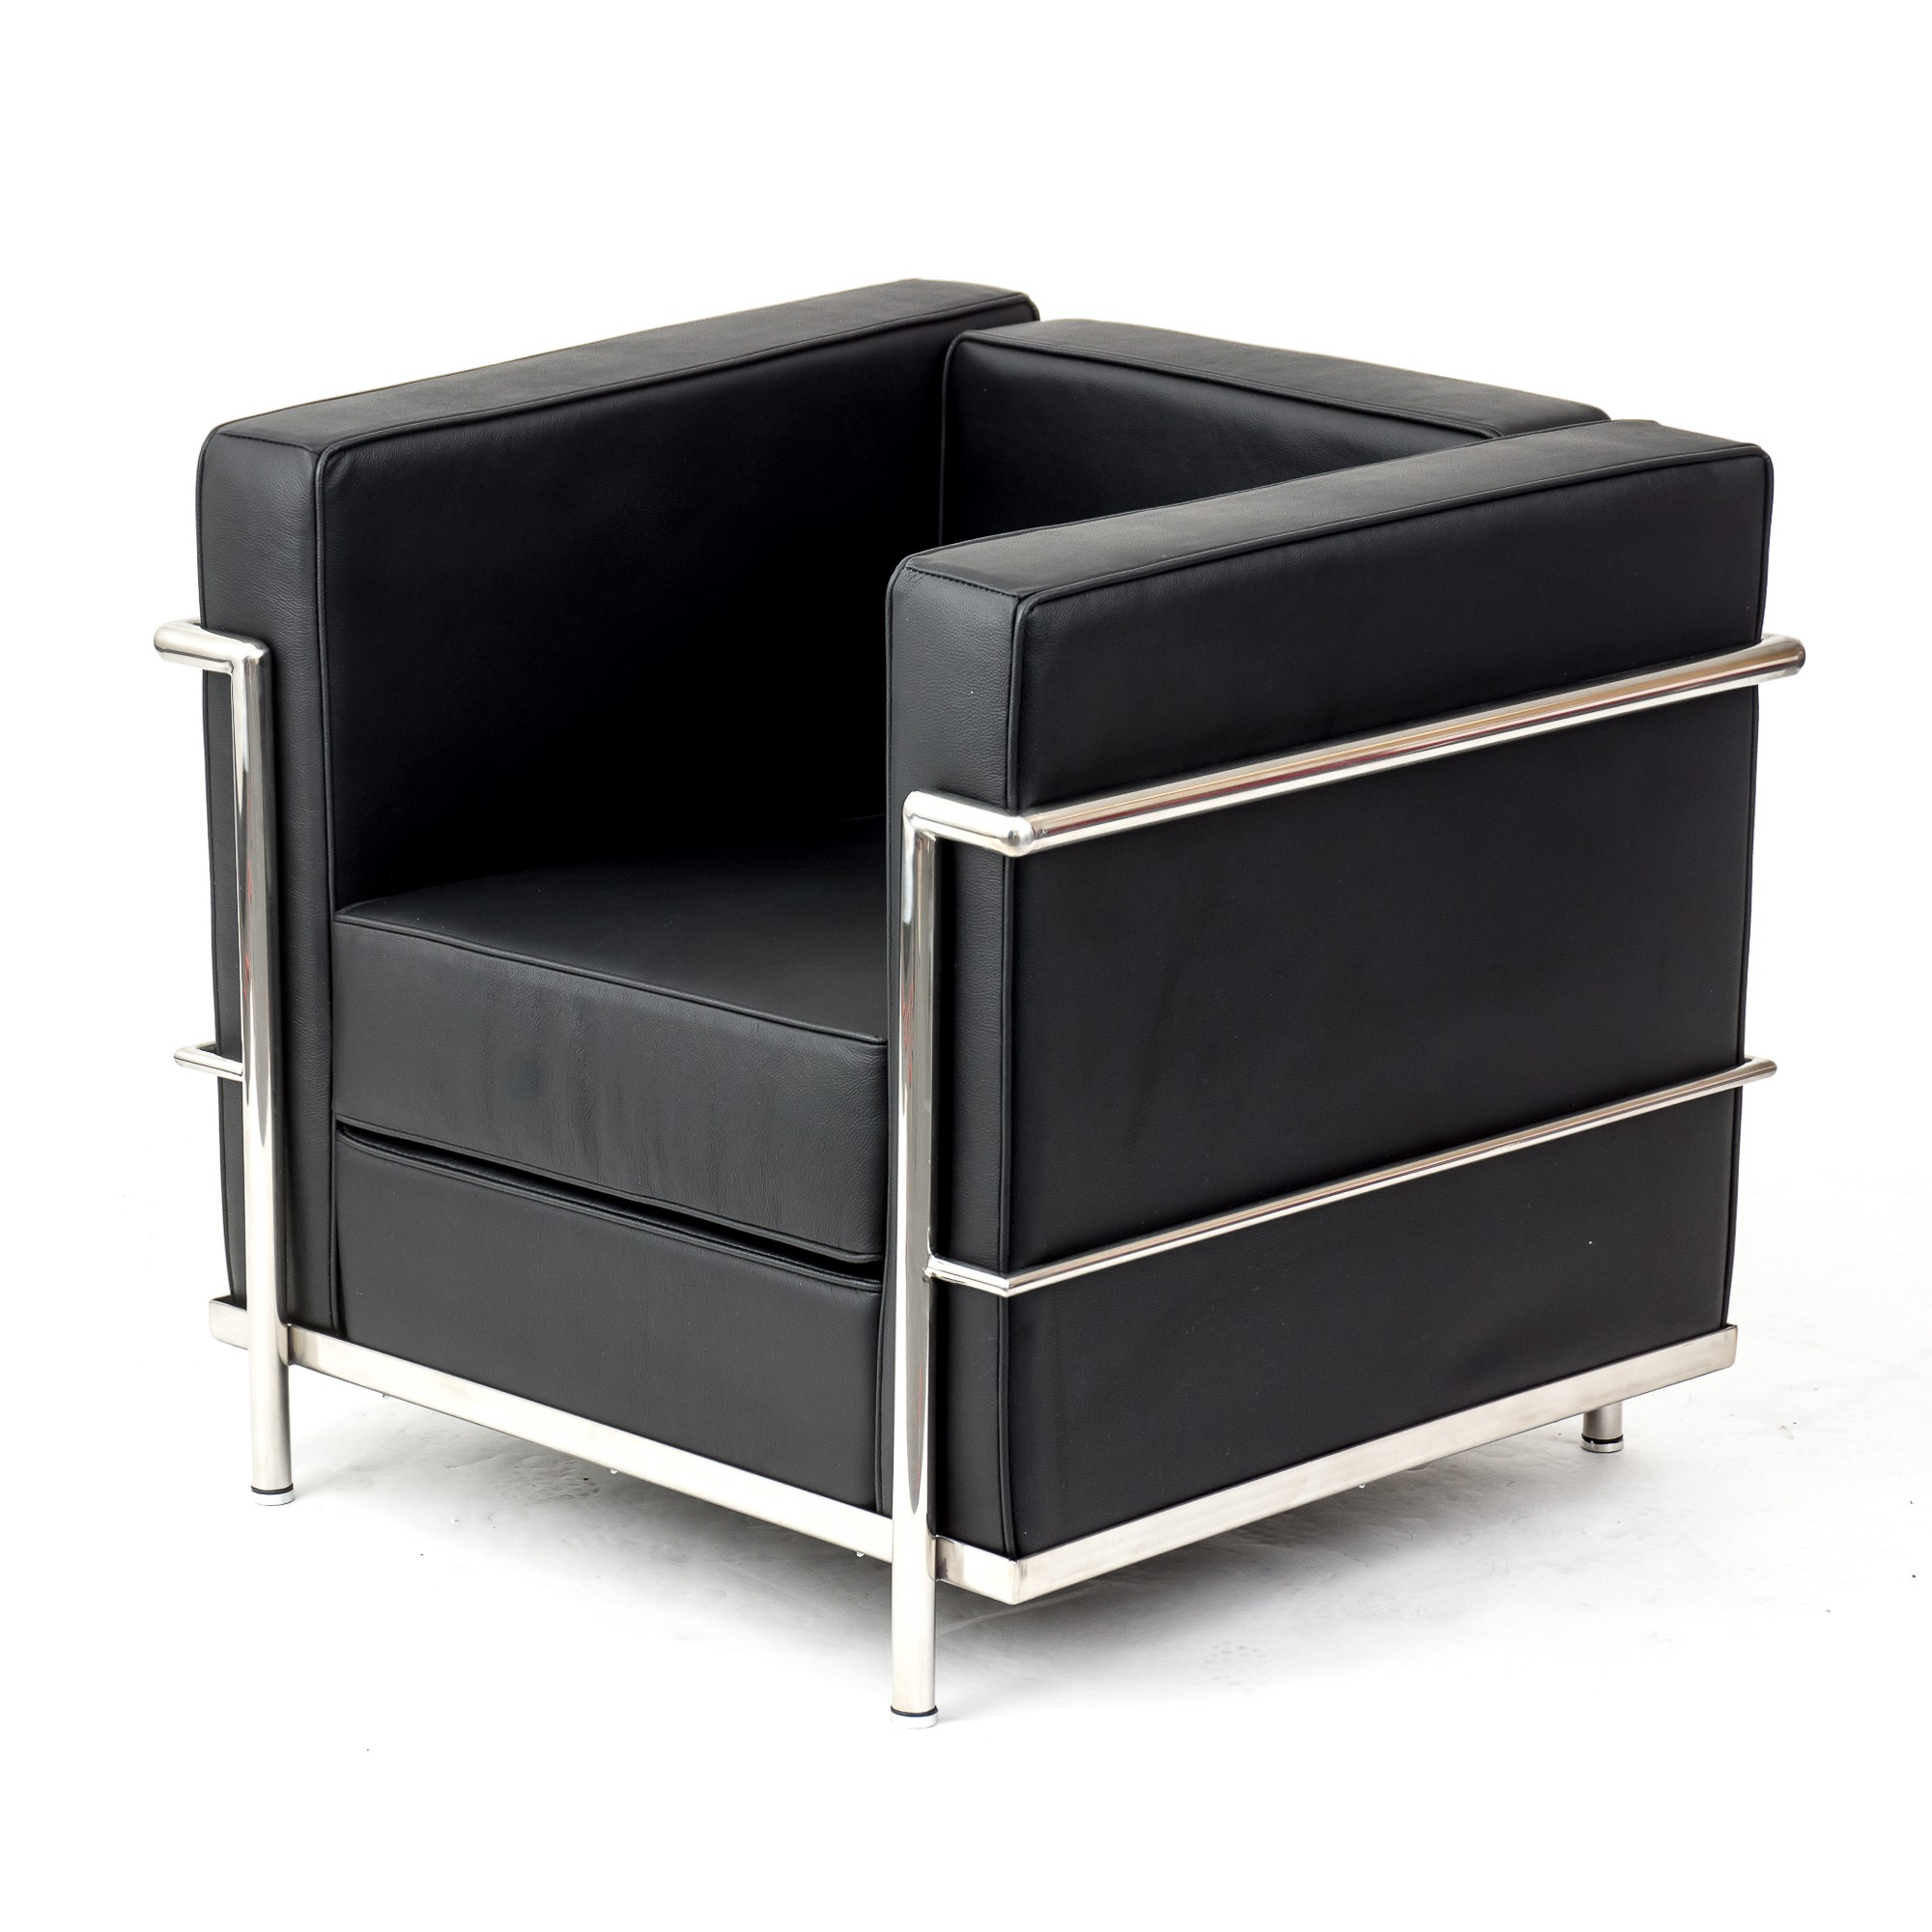 Le corbusier lc2 chair sofa black leather artis d cor for Le corbusier lc2